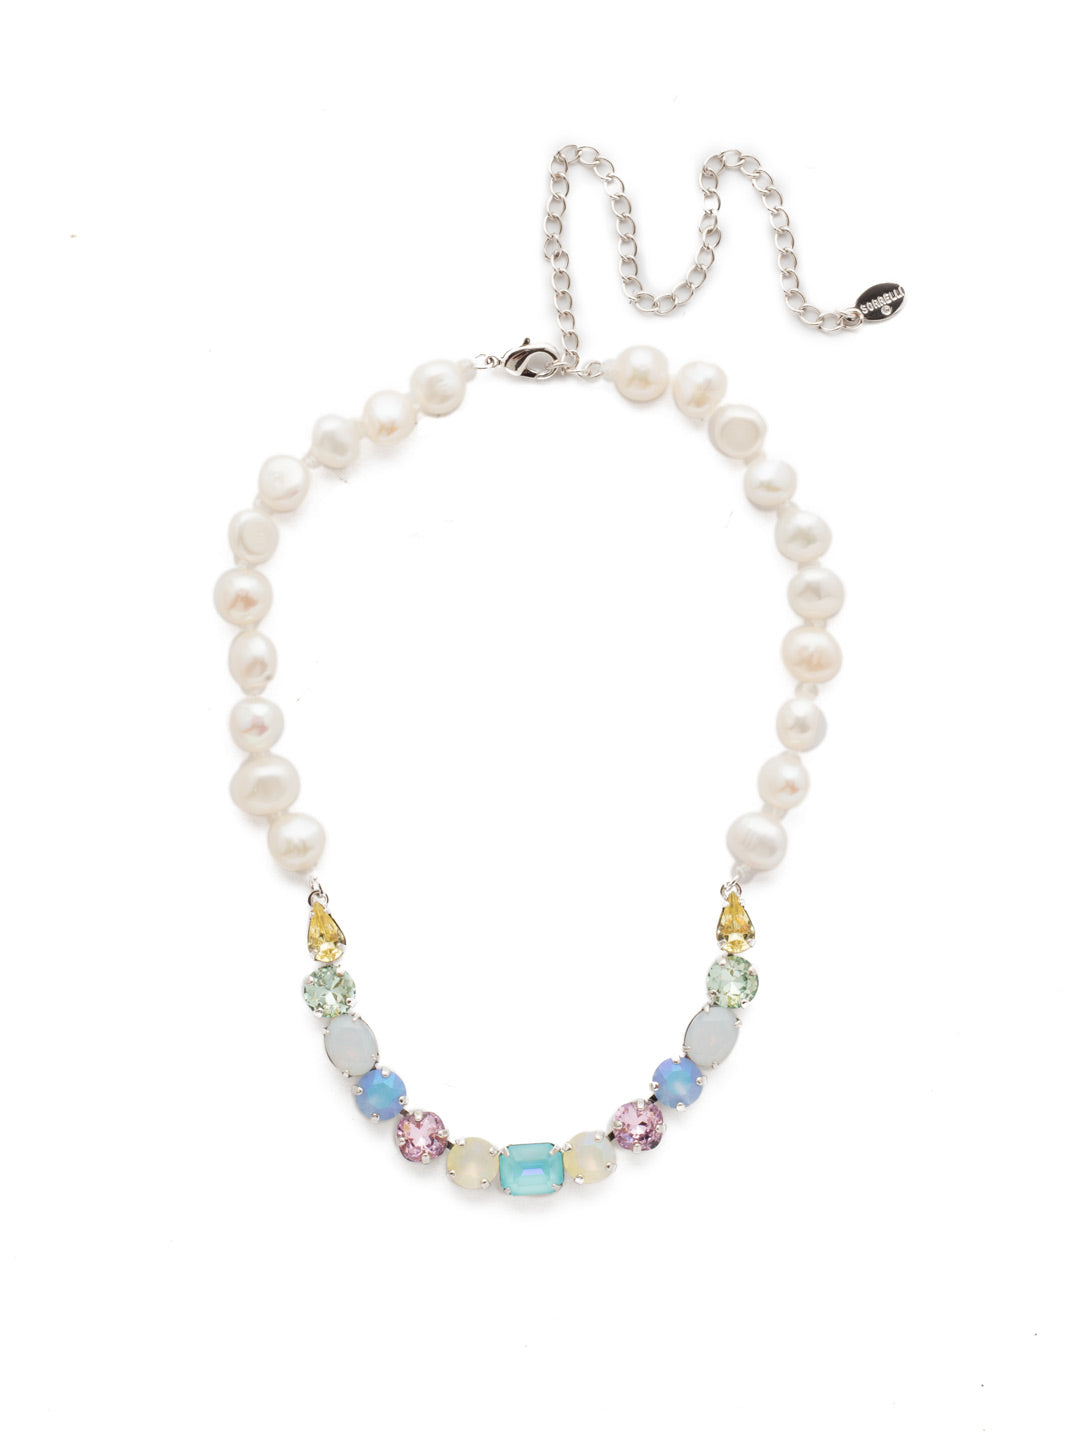 Cadenza Tennis Necklace - NEC14RHSSU